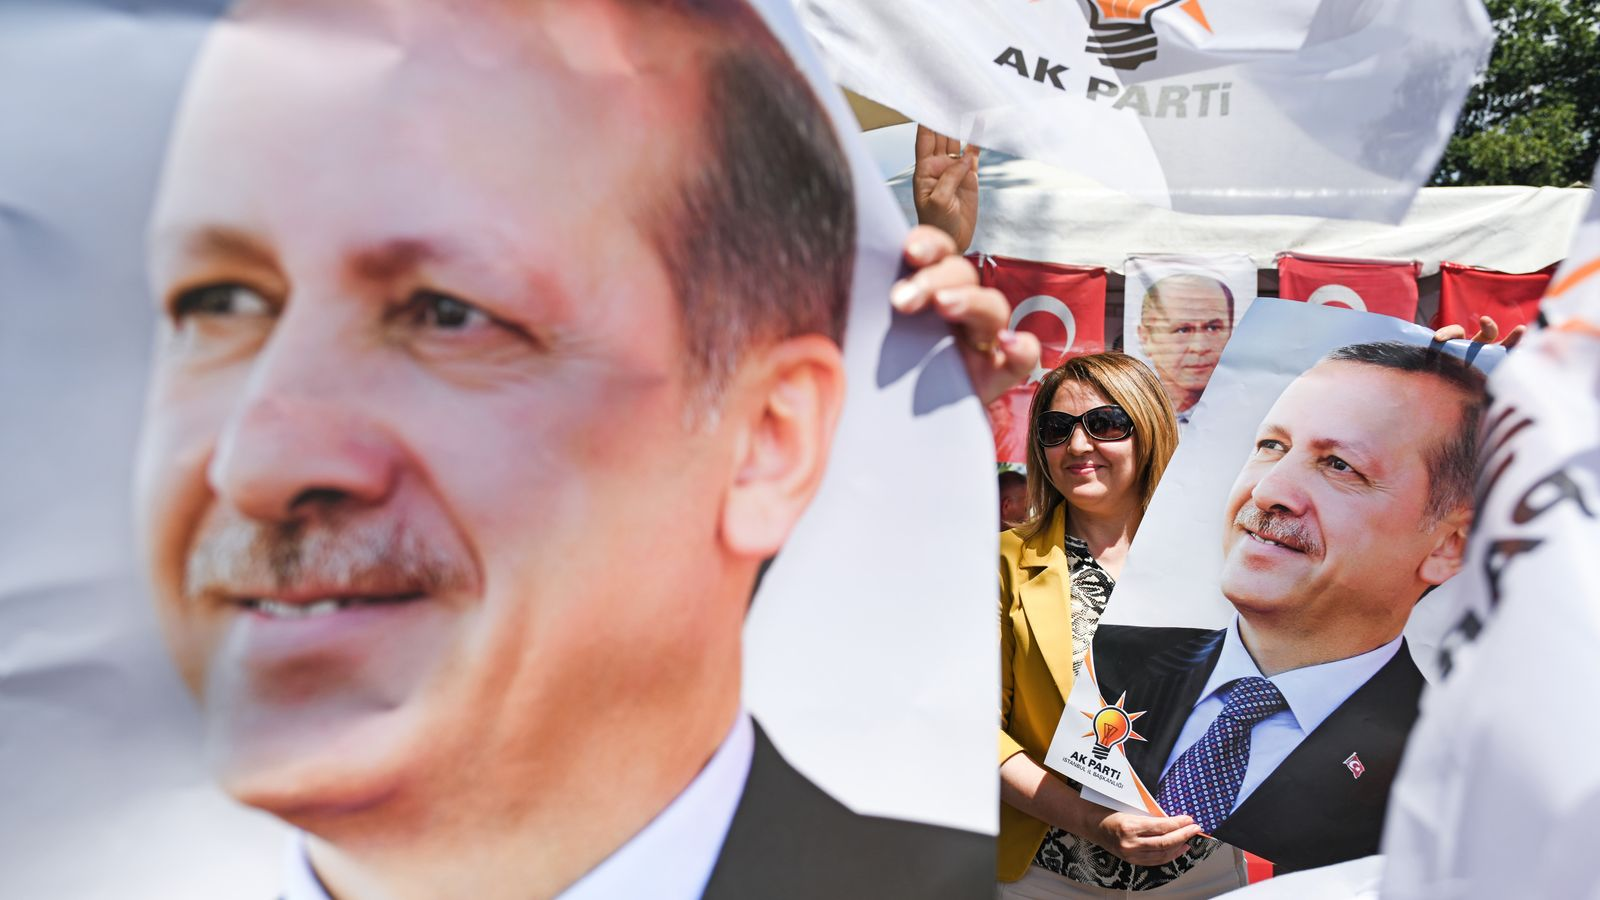 Final campaign push ahead of historic Turkey election